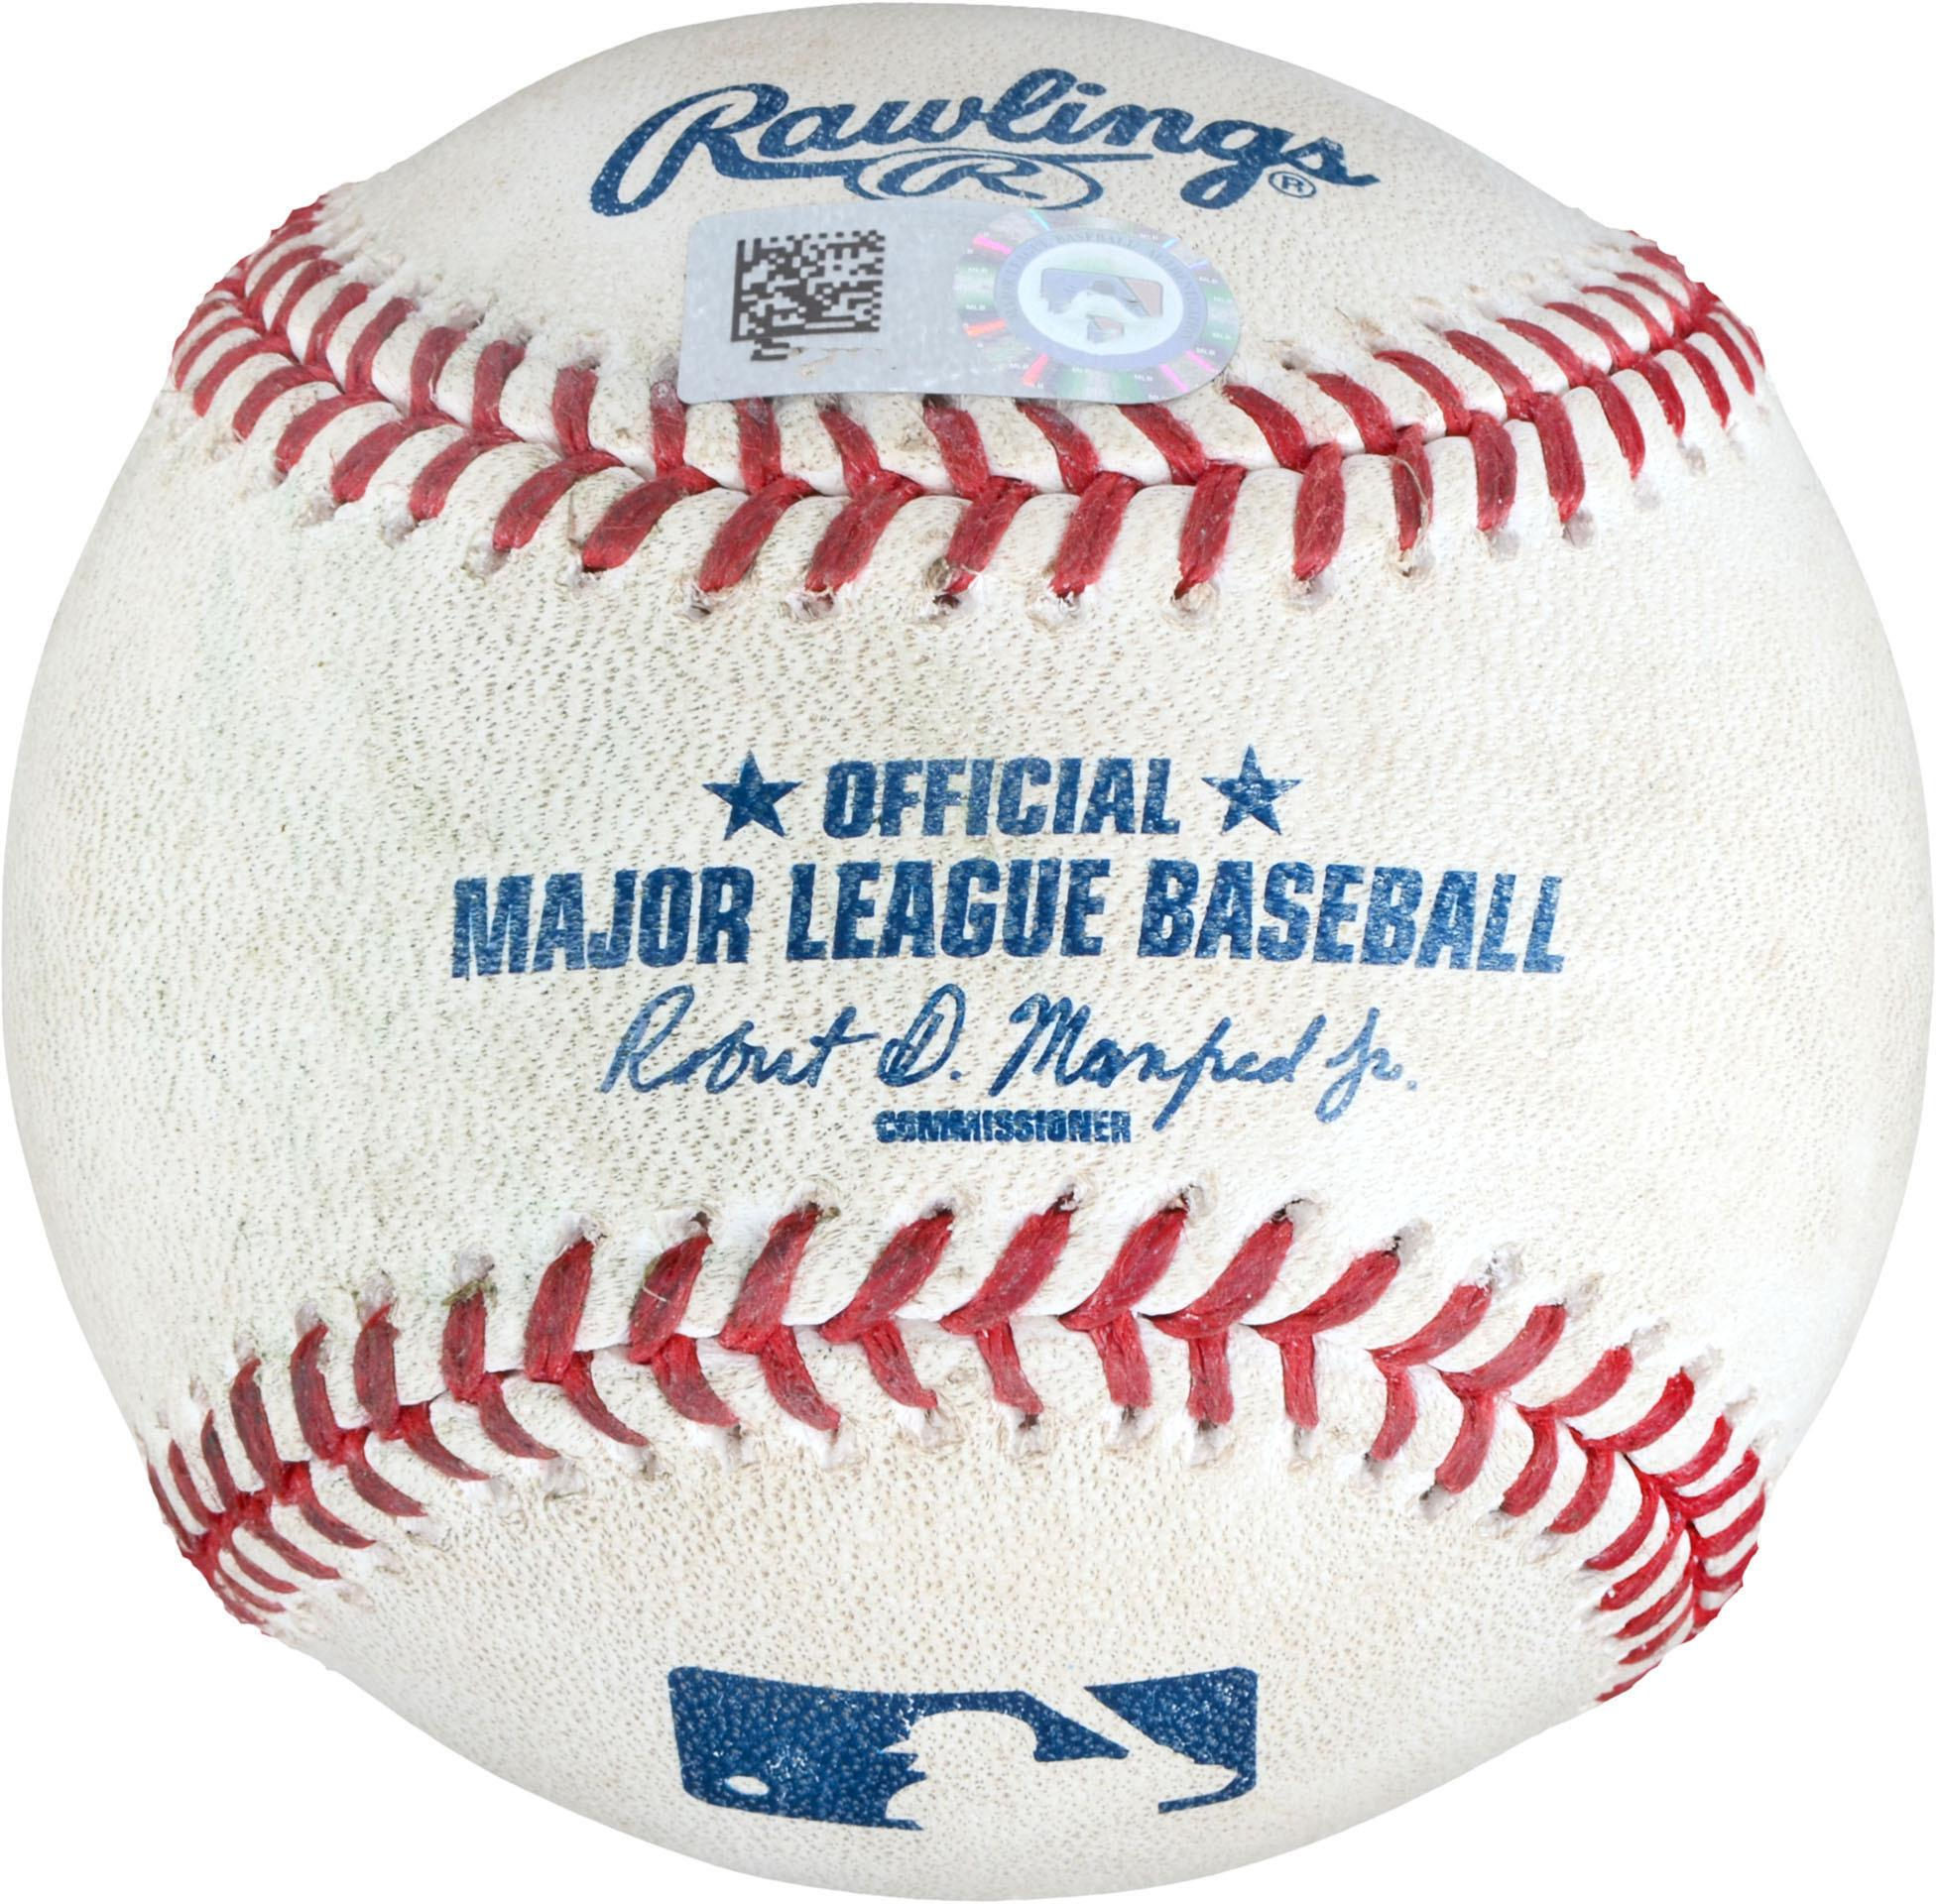 Giancarlo Stanton New York Yankees Game-Used Double Baseball vs. Oakland Athletics on September 5, 2018 - Fanatics Authentic Certified